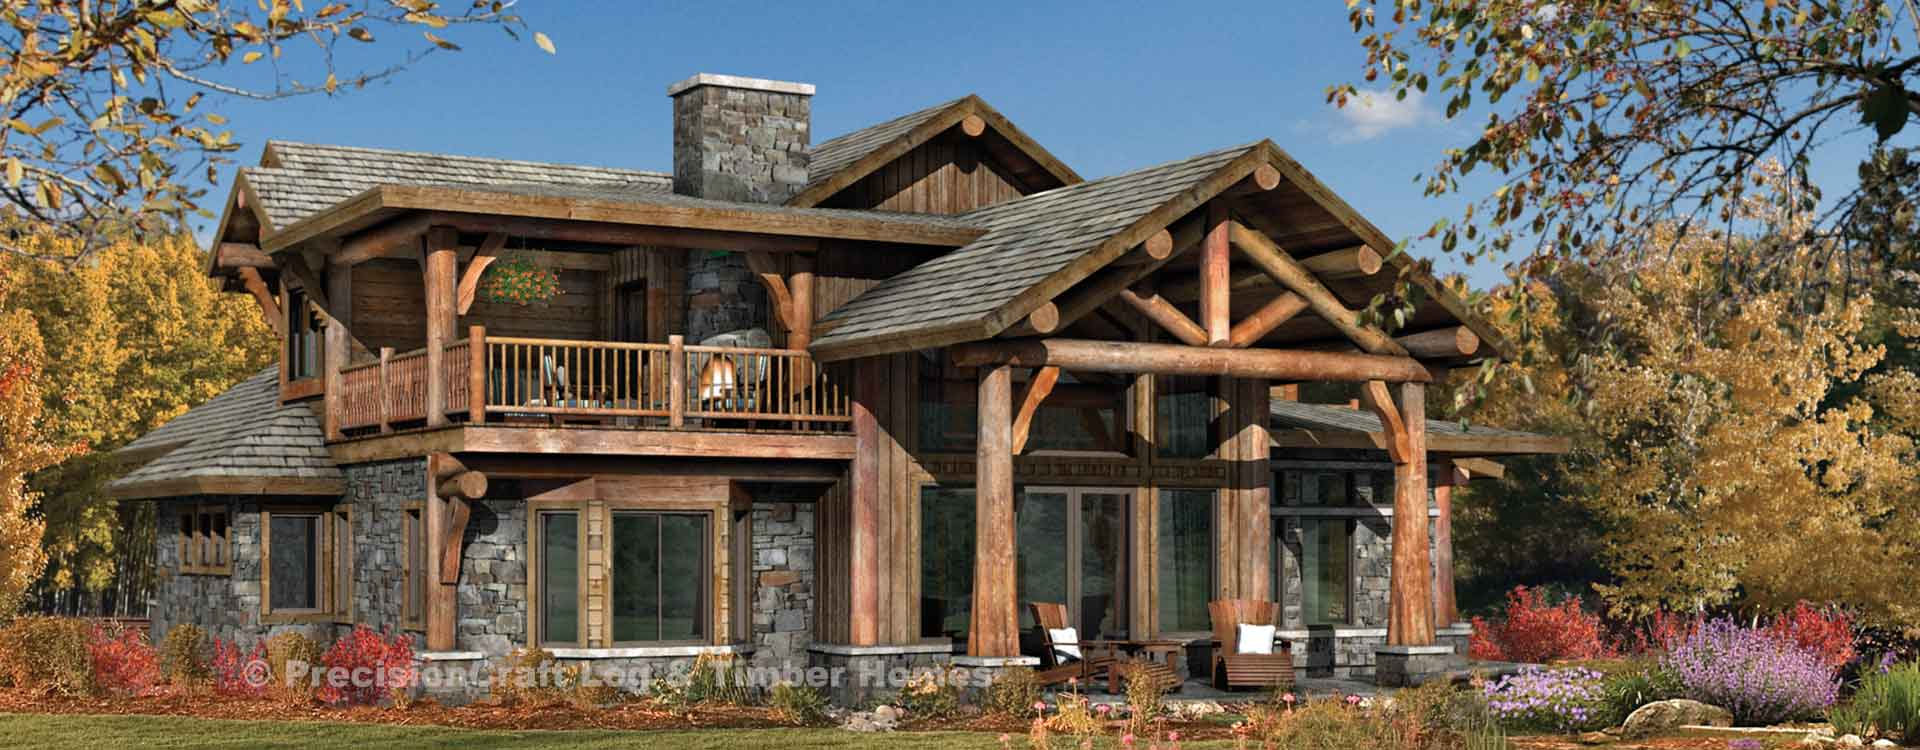 Best Kitchen Gallery: Timber Frame And Log Home Floor Plans By Precisioncraft of Log Home Floor Plans And Designs  on rachelxblog.com